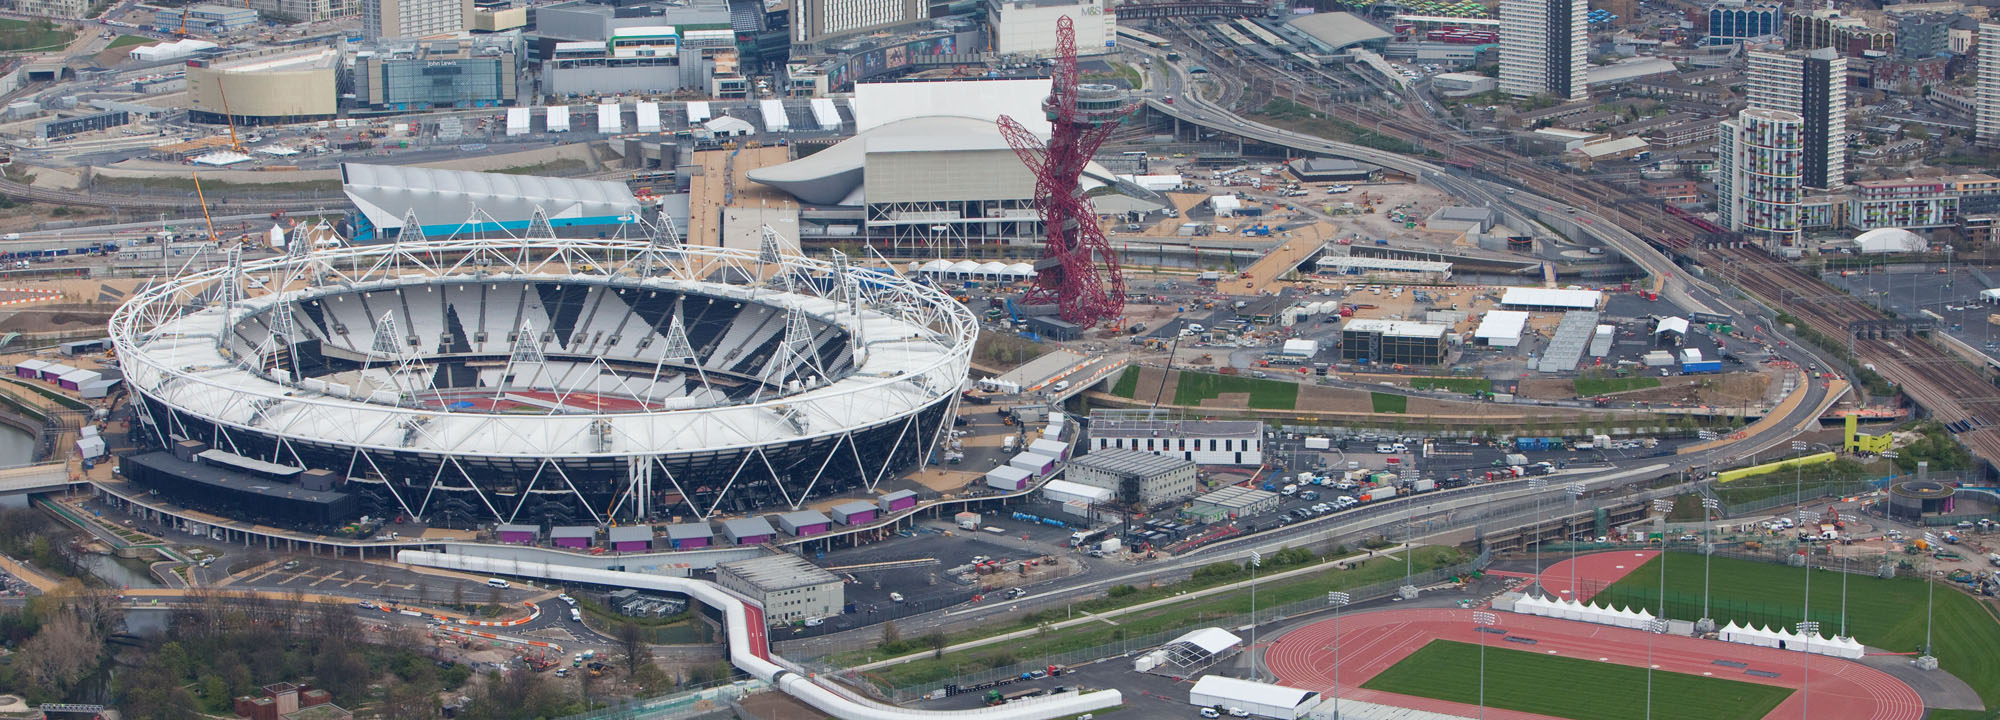 Aerial view of Olympic Stadium in London